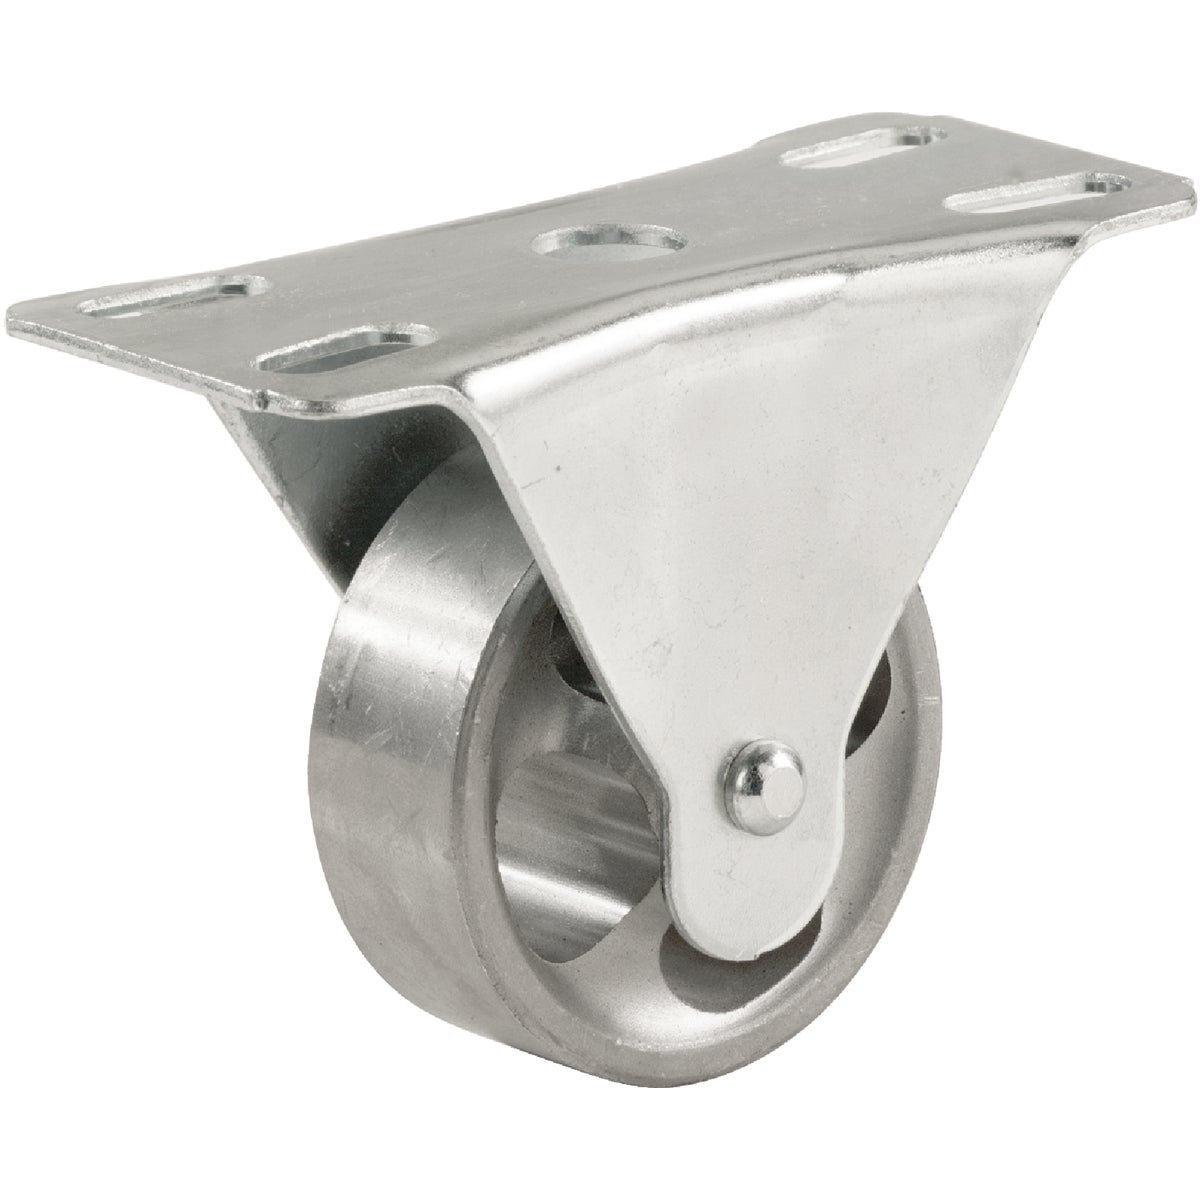 "2-1/2"" RIGID IRON CASTER"